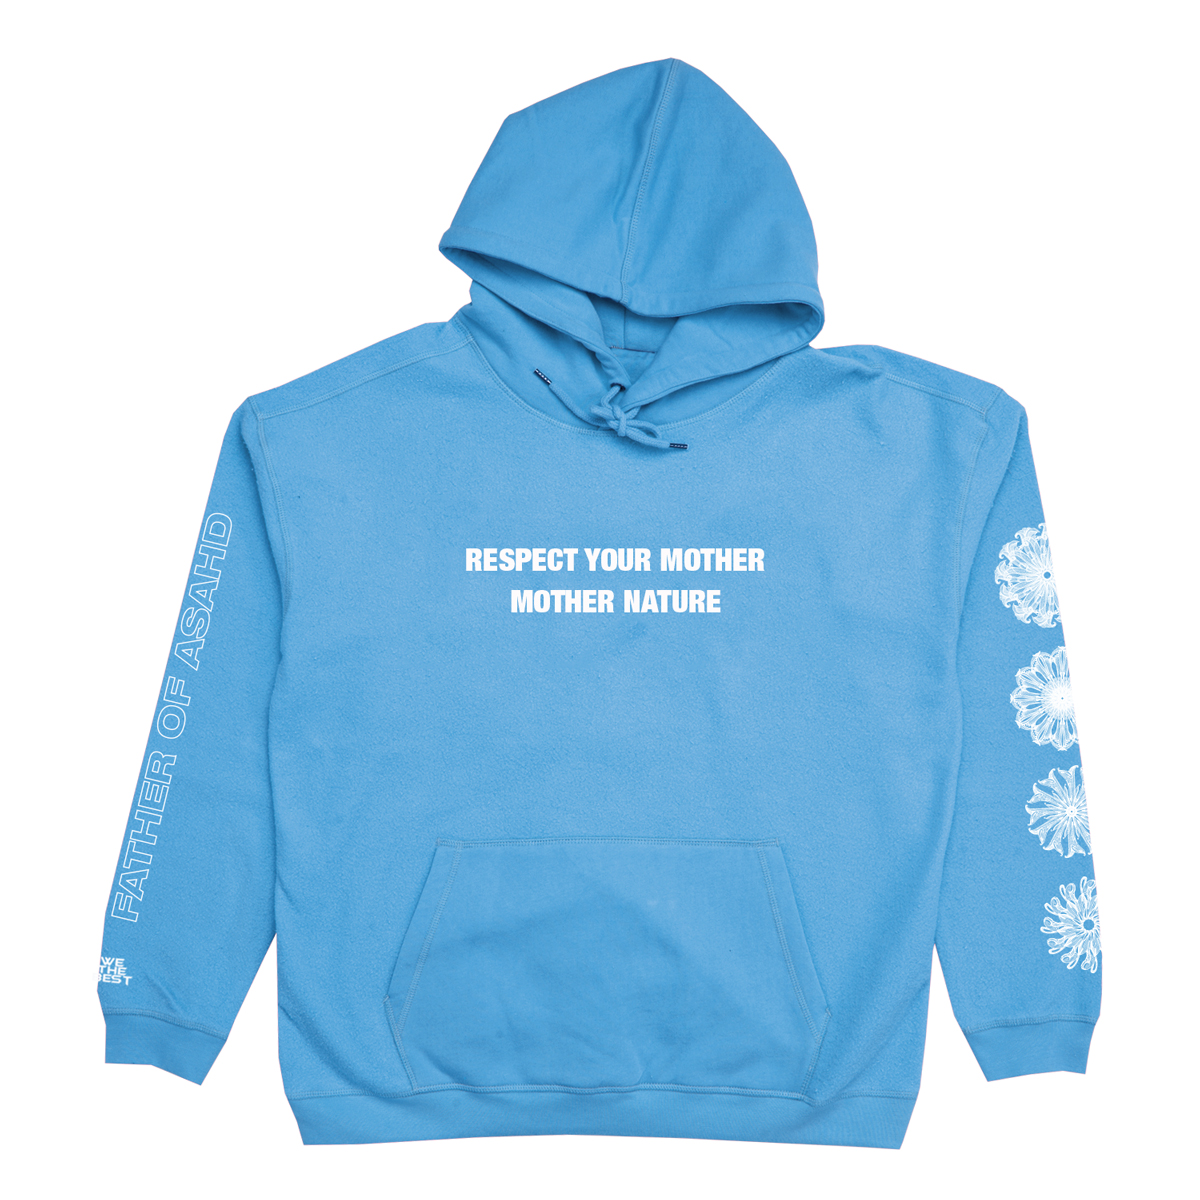 Respect Mother Nature Blue Hoodie + Father of Asahd Album Download